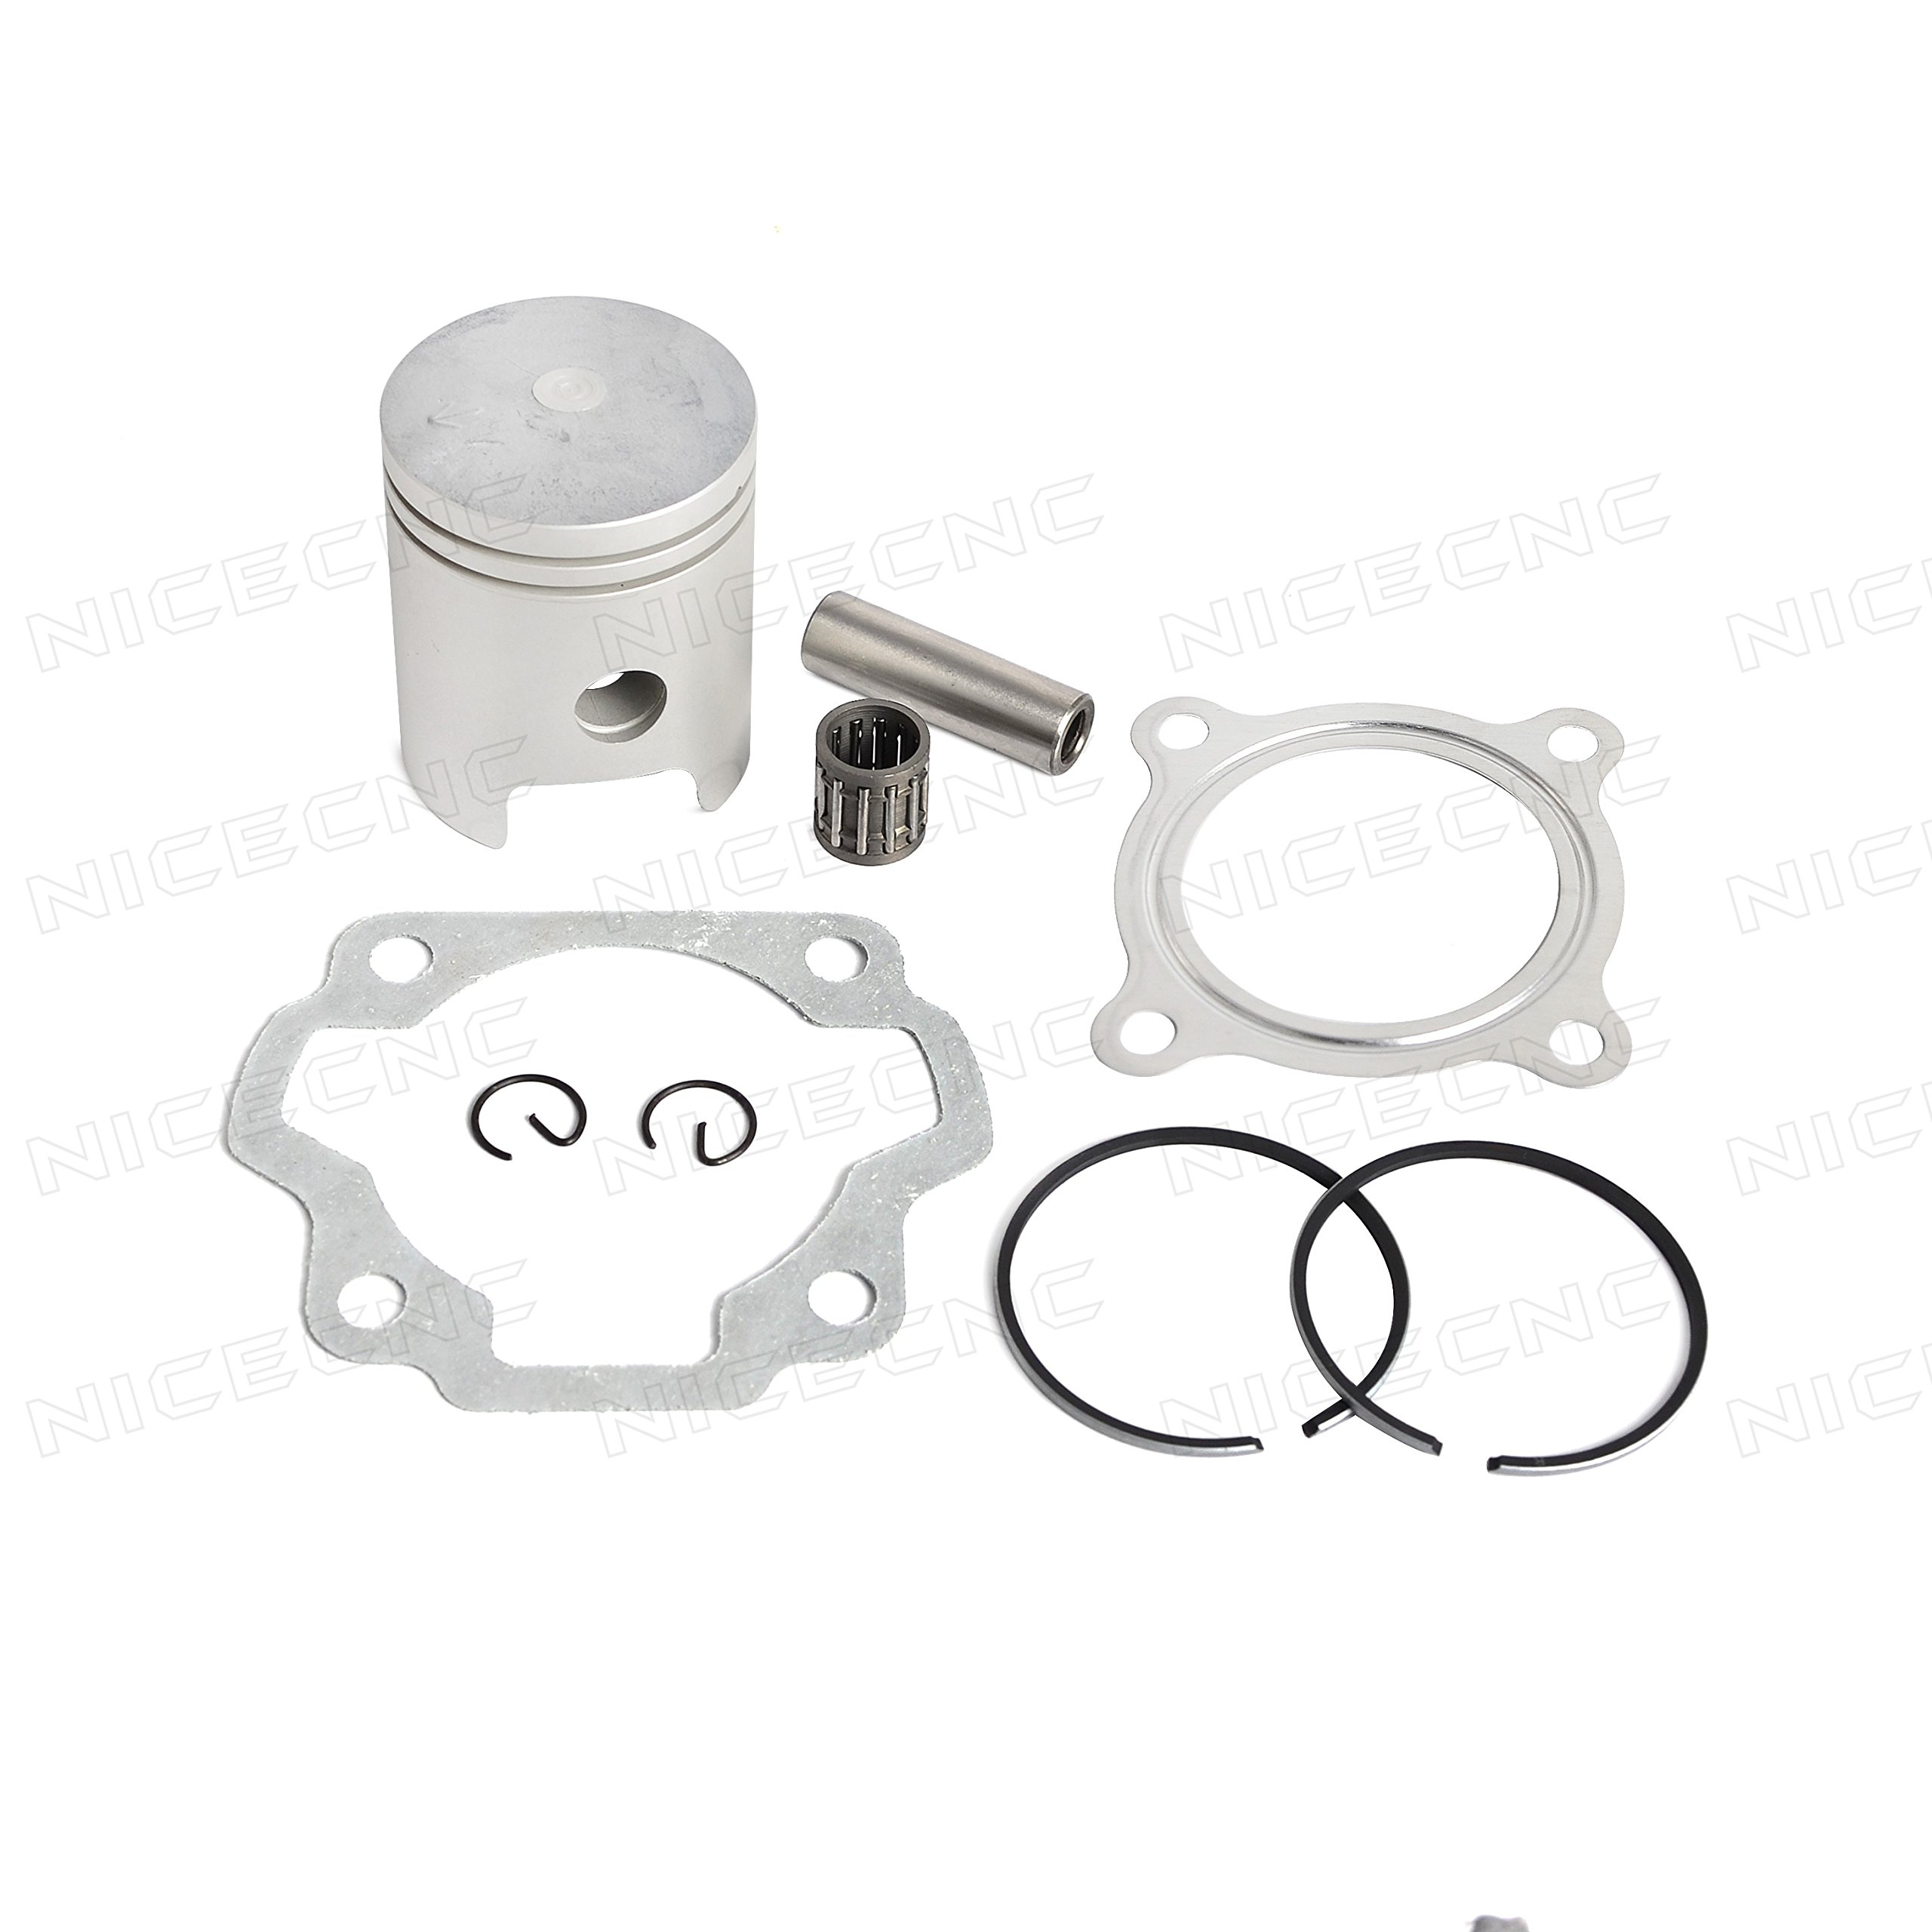 NICECNC Piston Ring Kit Gasket Wrist Pin Bearing Set for Dirt Bike YAMAHA PW80 1985-2006